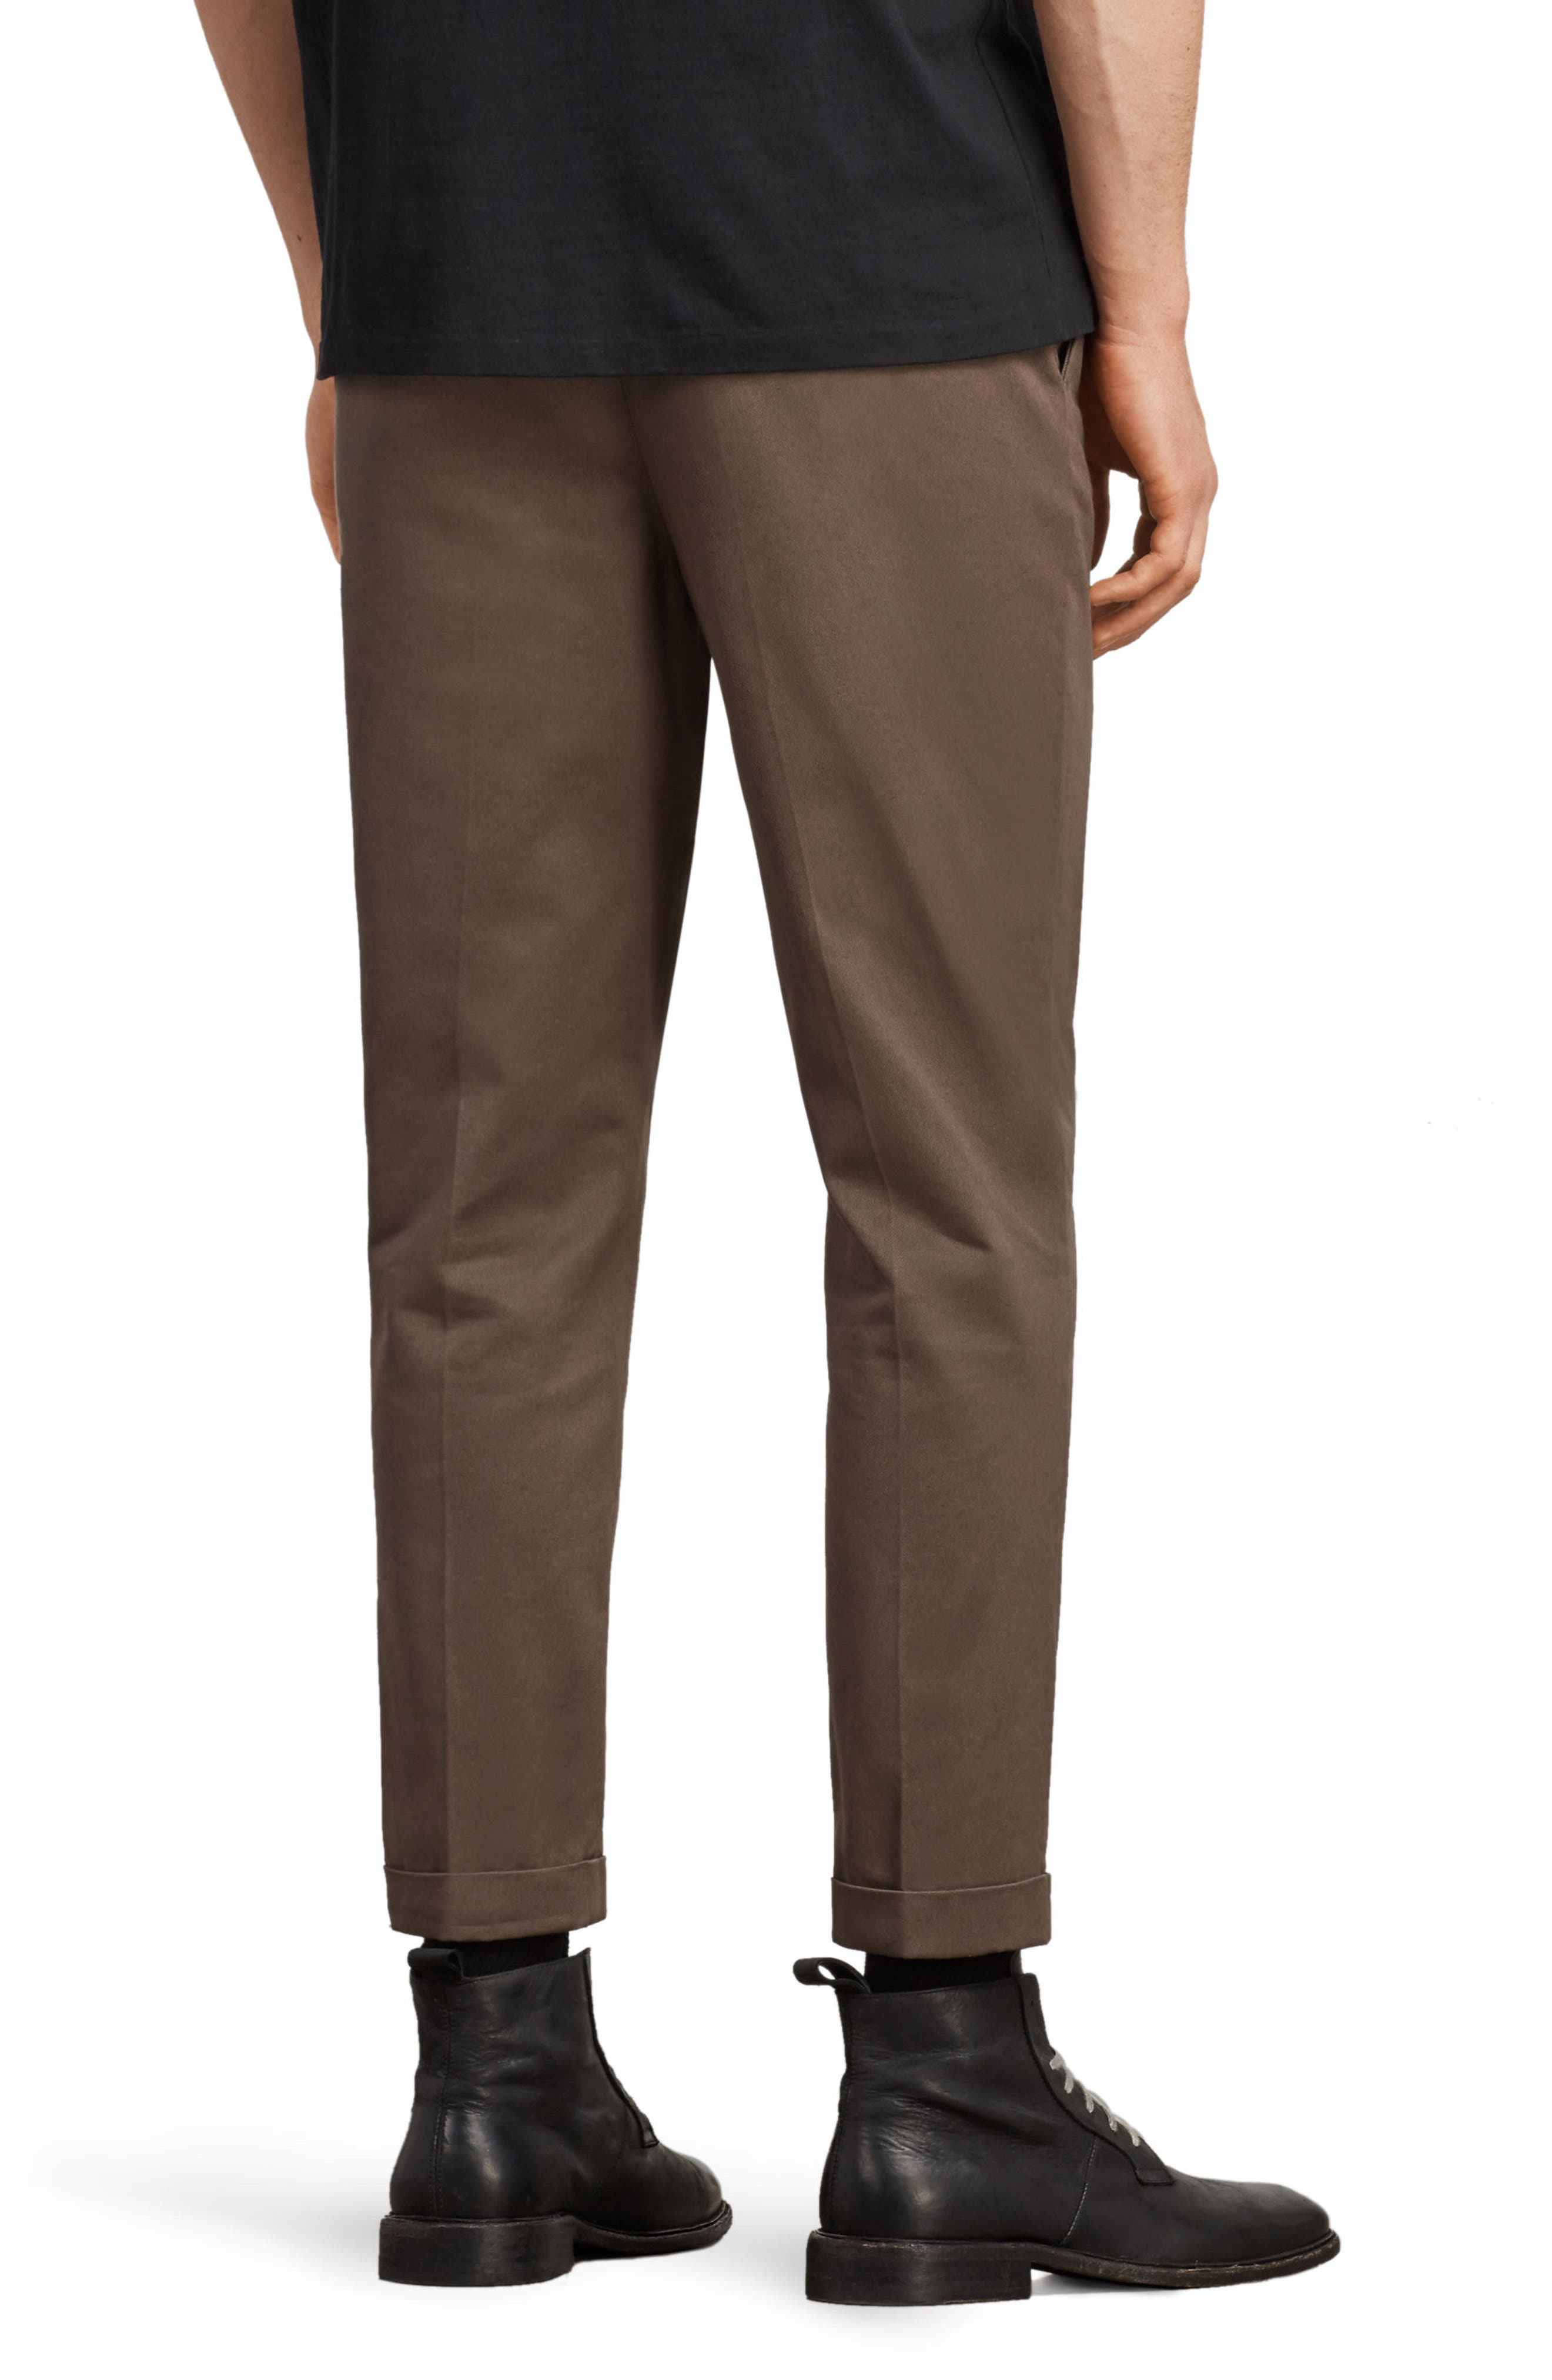 Salco Slim Fit Chino Pants,                             Alternate thumbnail 2, color,                             Khaki Green